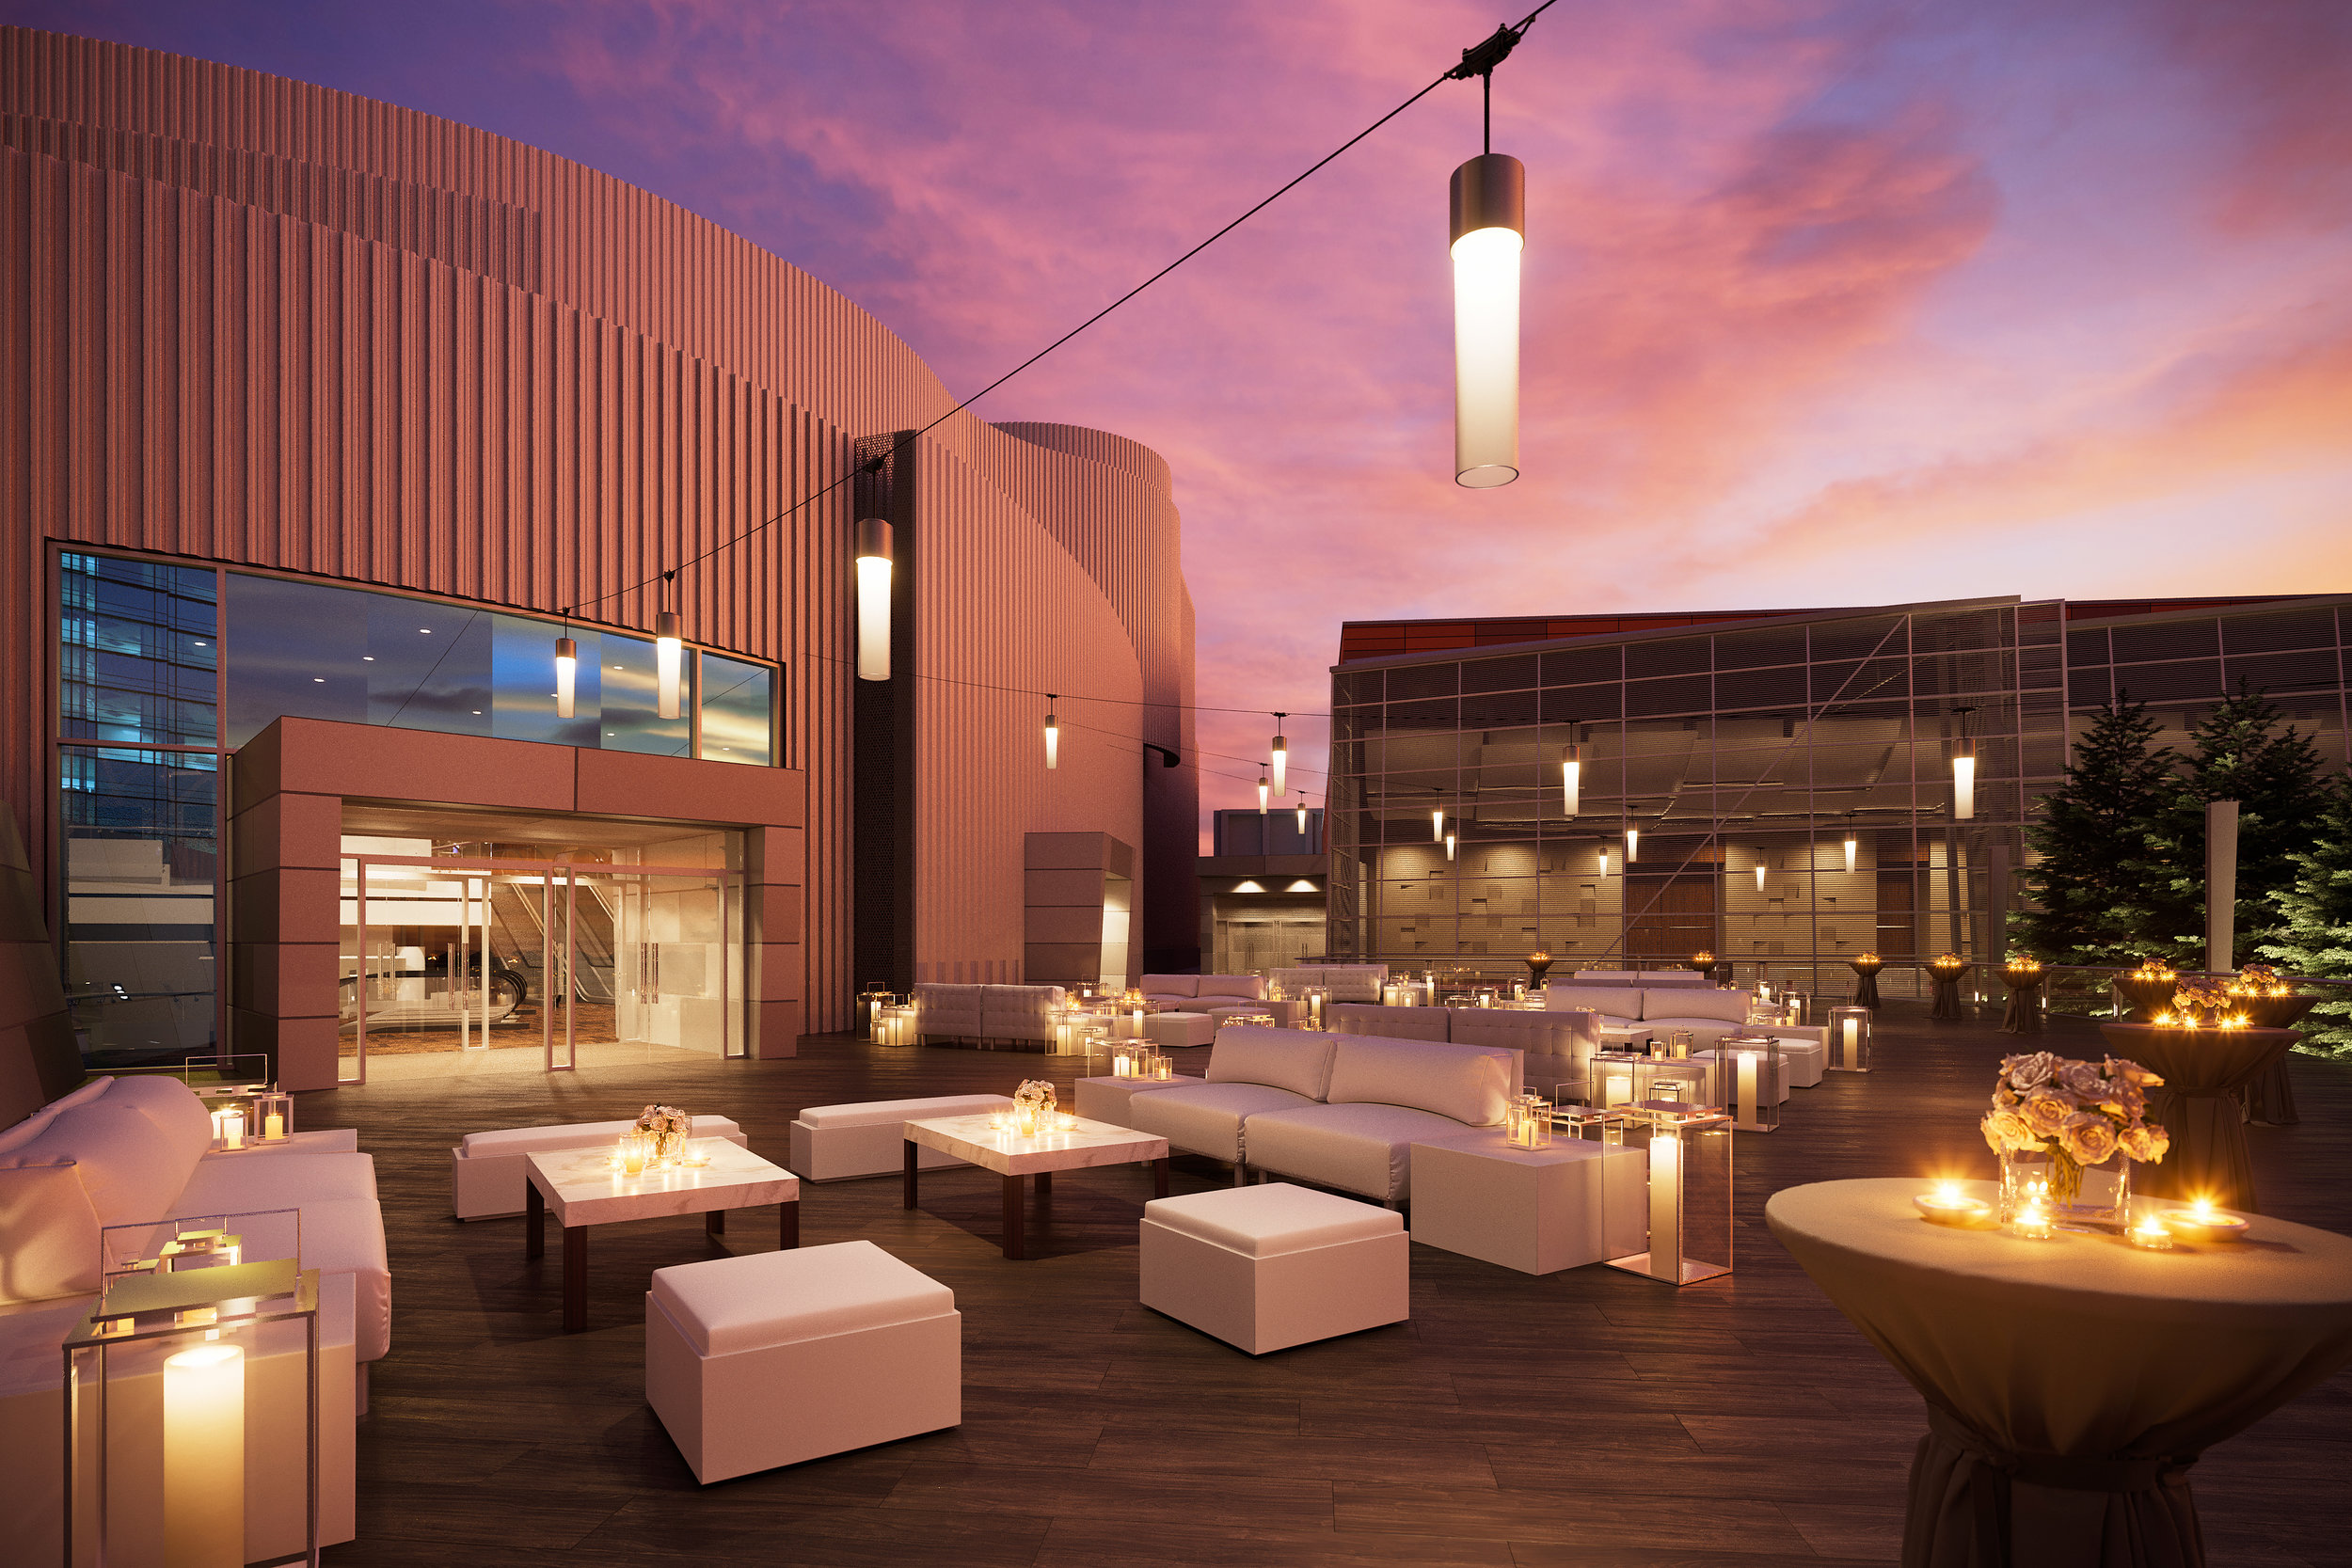 The Ironwood Terrace at ARIA is the perfect place for a luxury wedding. Las Vegas Wedding Planner Andrea Eppolito is a prefered vendor at ARIA and looks forward to showcasing this space. Rendering provided by ARIA Las Vegas.